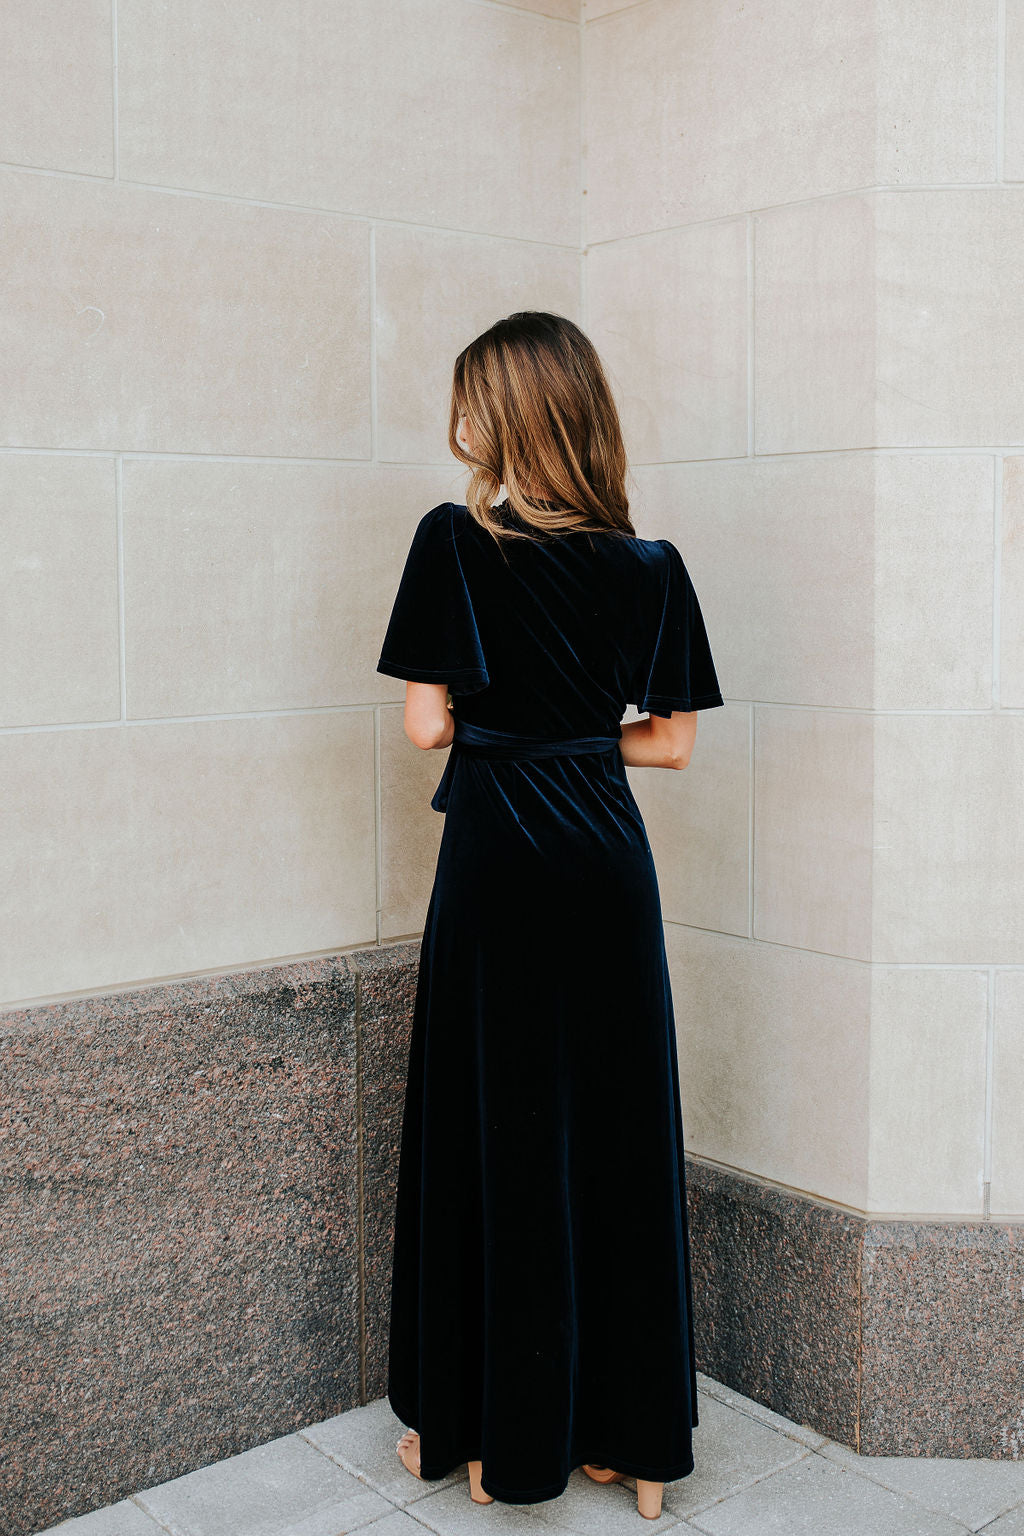 THE REGAL VELVET WRAP DRESS BY PINK DESERT IN NAVY